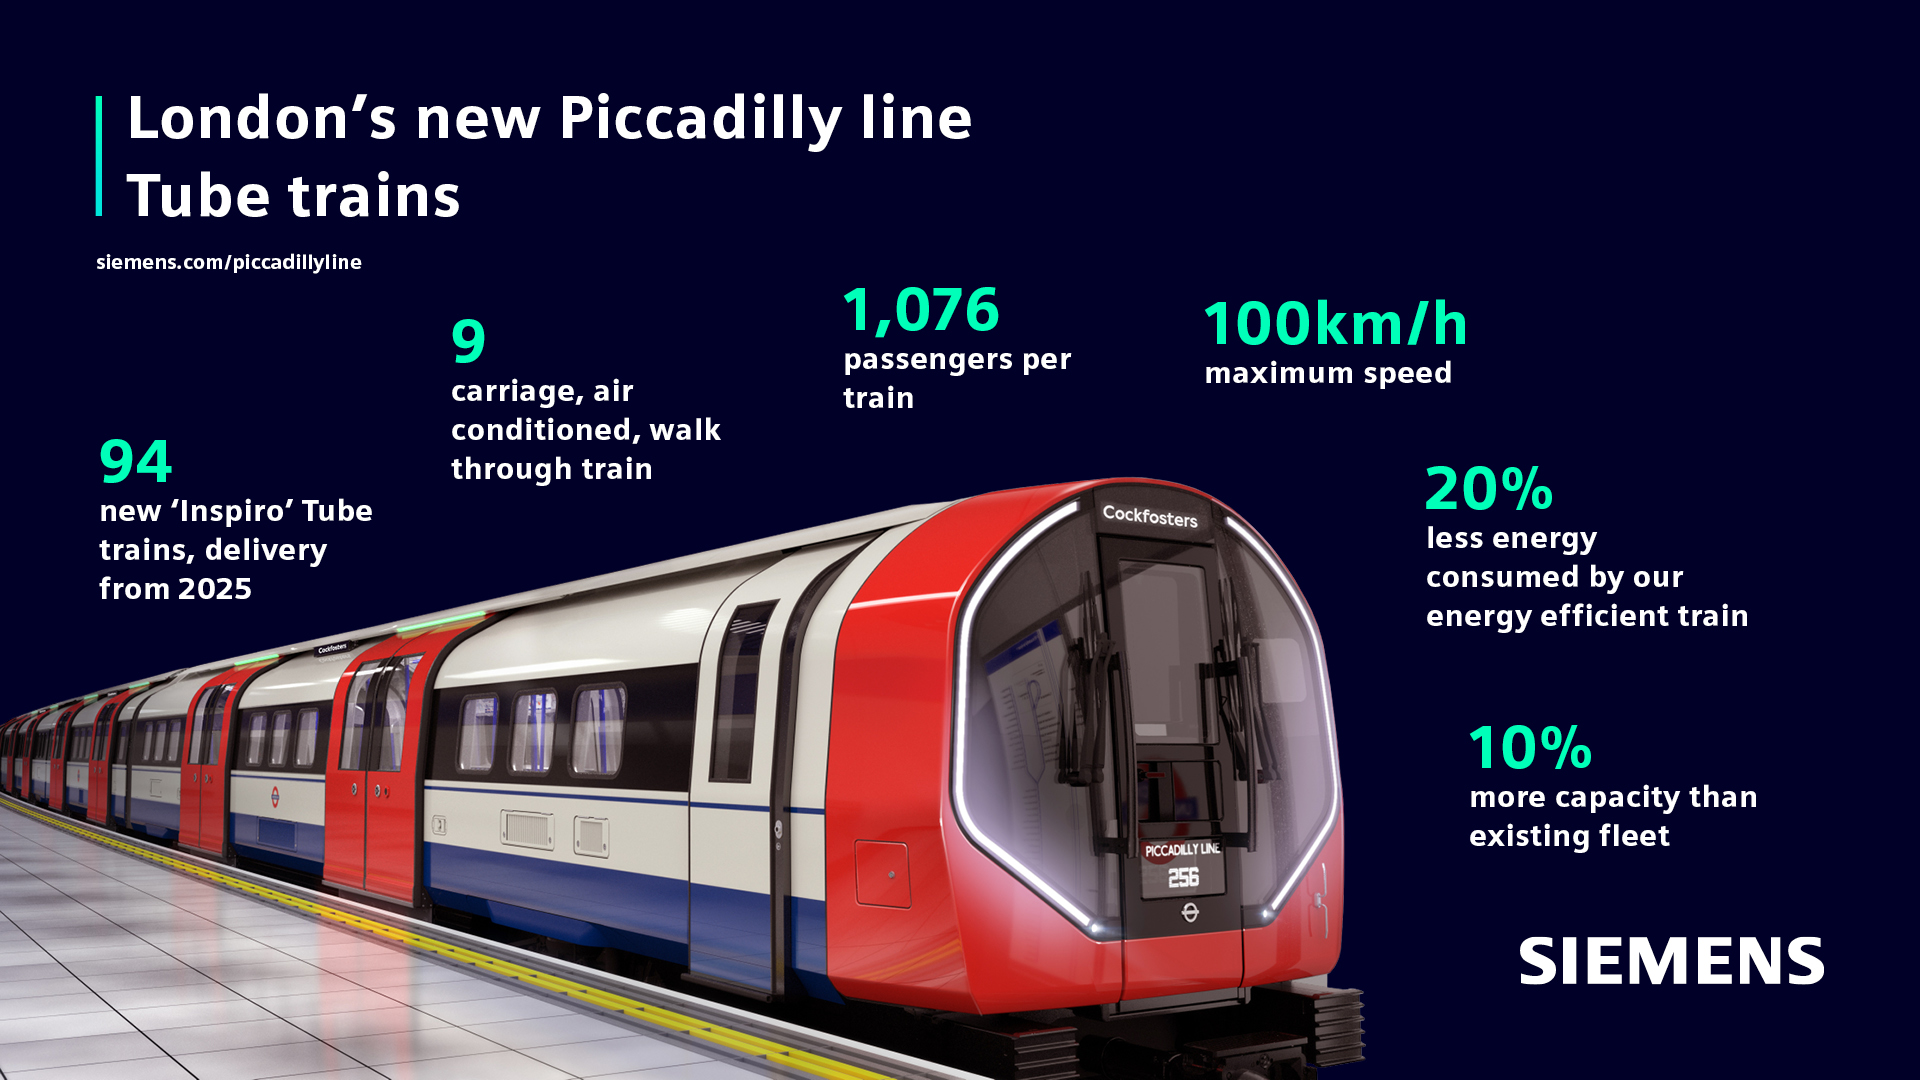 Fact sheet on the new metro train for the Piccadilly line